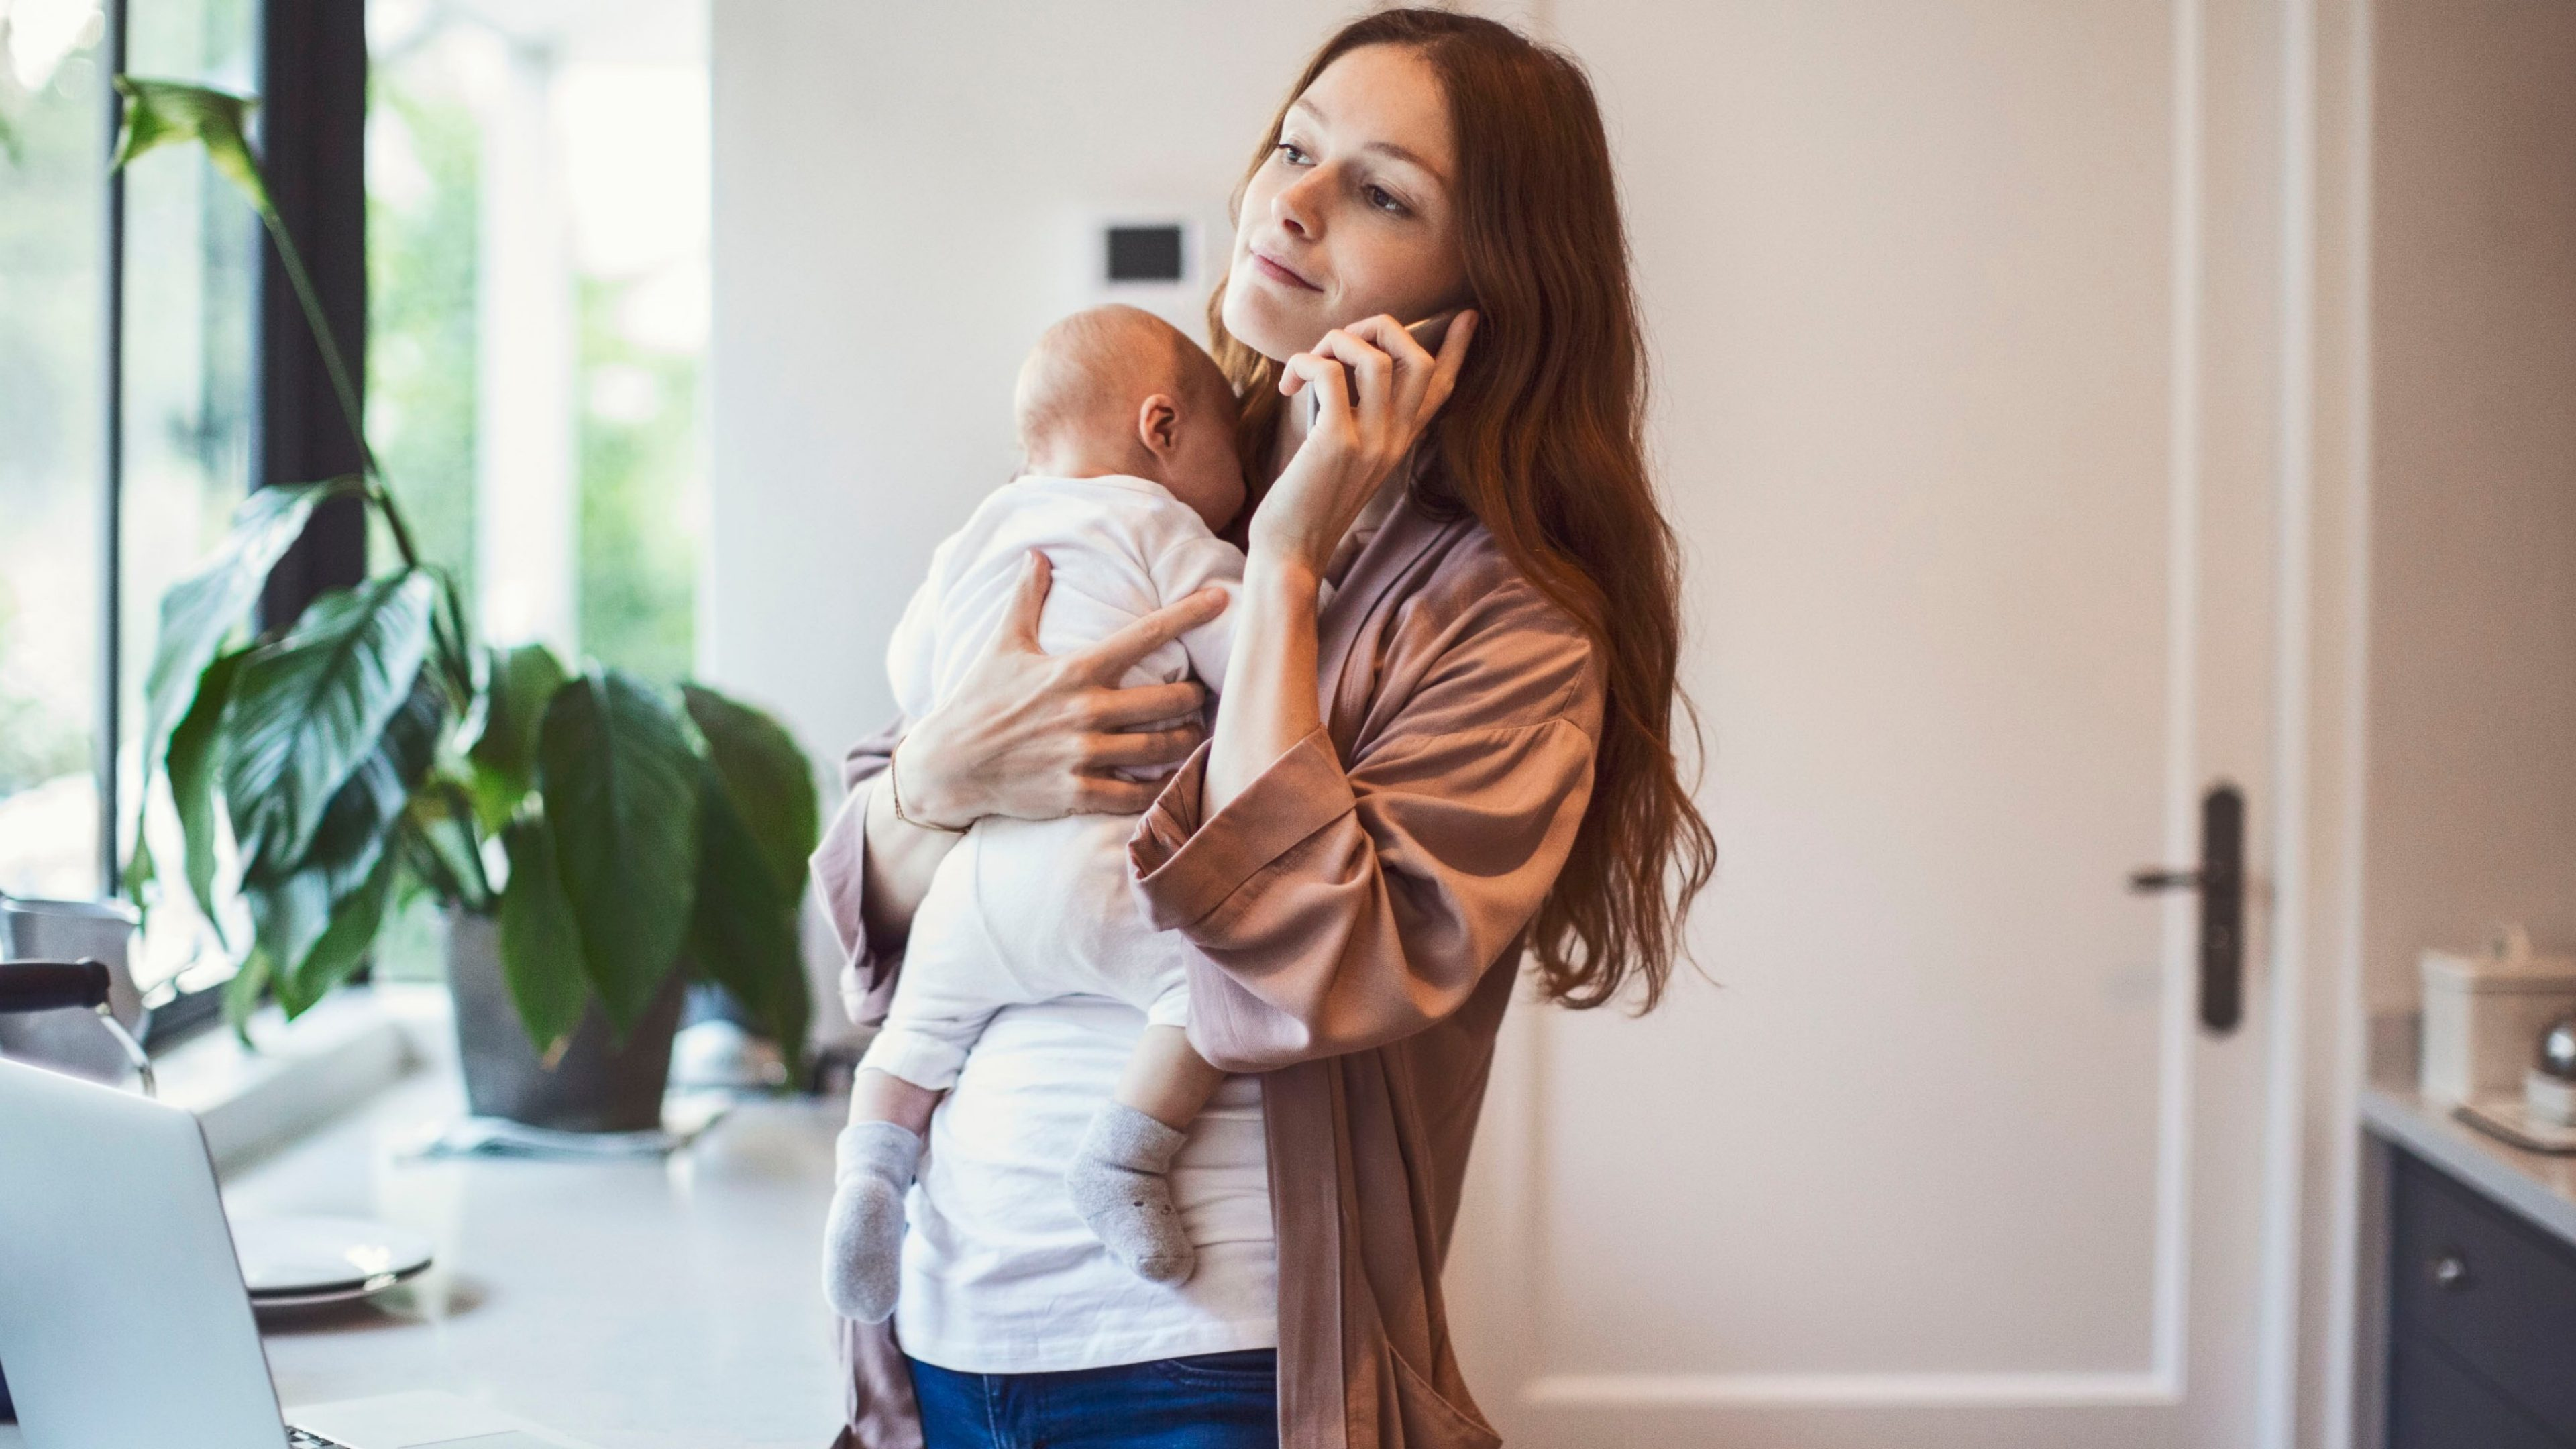 Woman using mobile phone while carrying baby at kitchen counter. Mid adult mother is with newborn boy standing at home. She is wearing casuals.